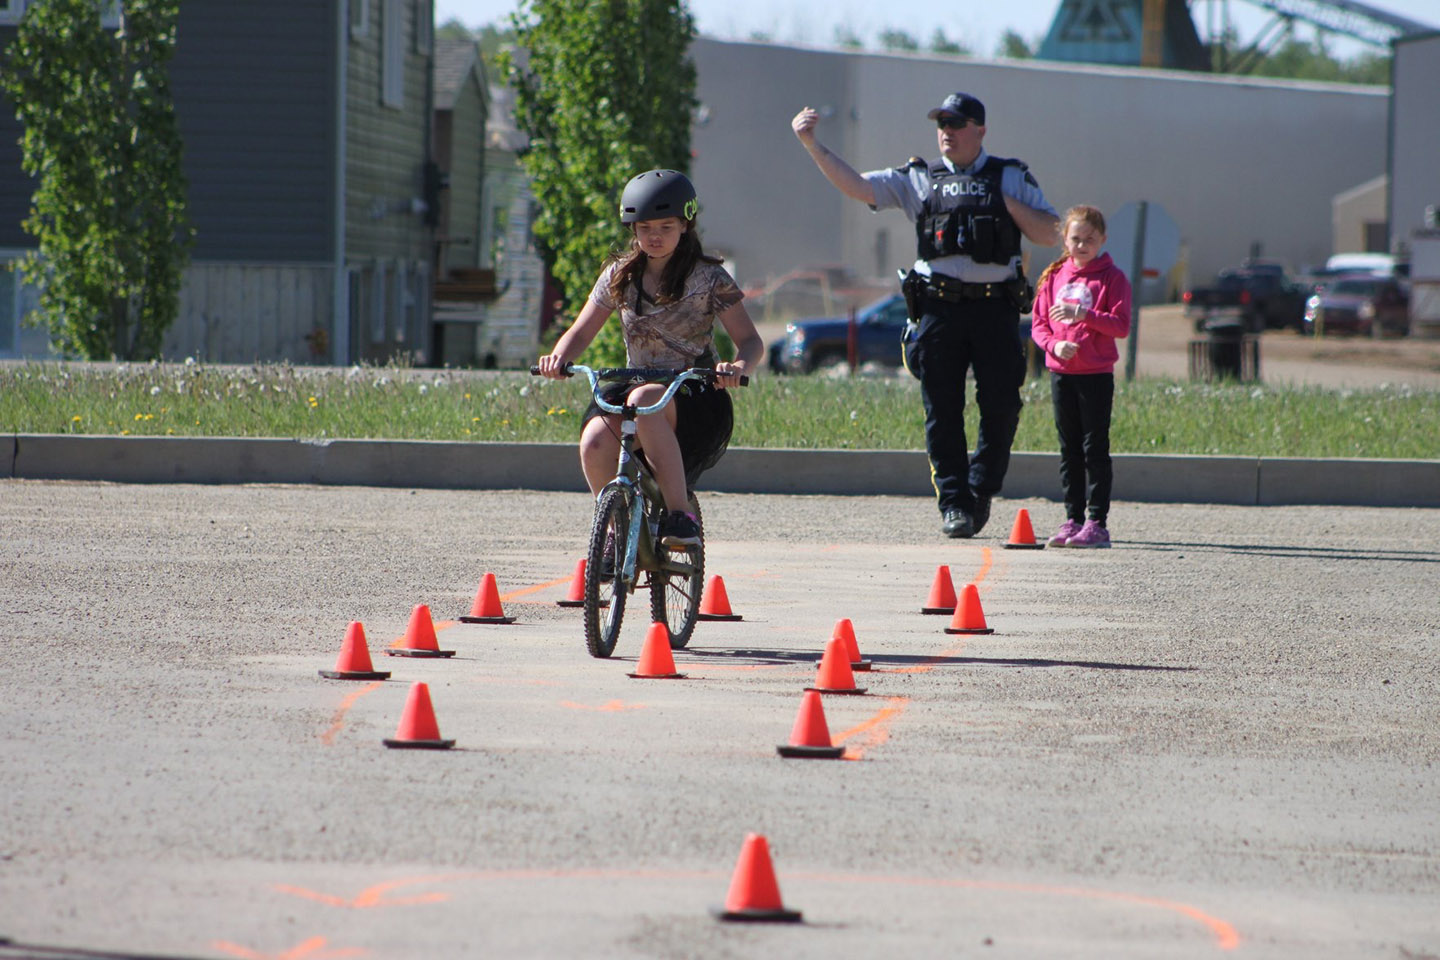 Sergeant Greg Beach assists a young rider during a bicycle safety rodeo